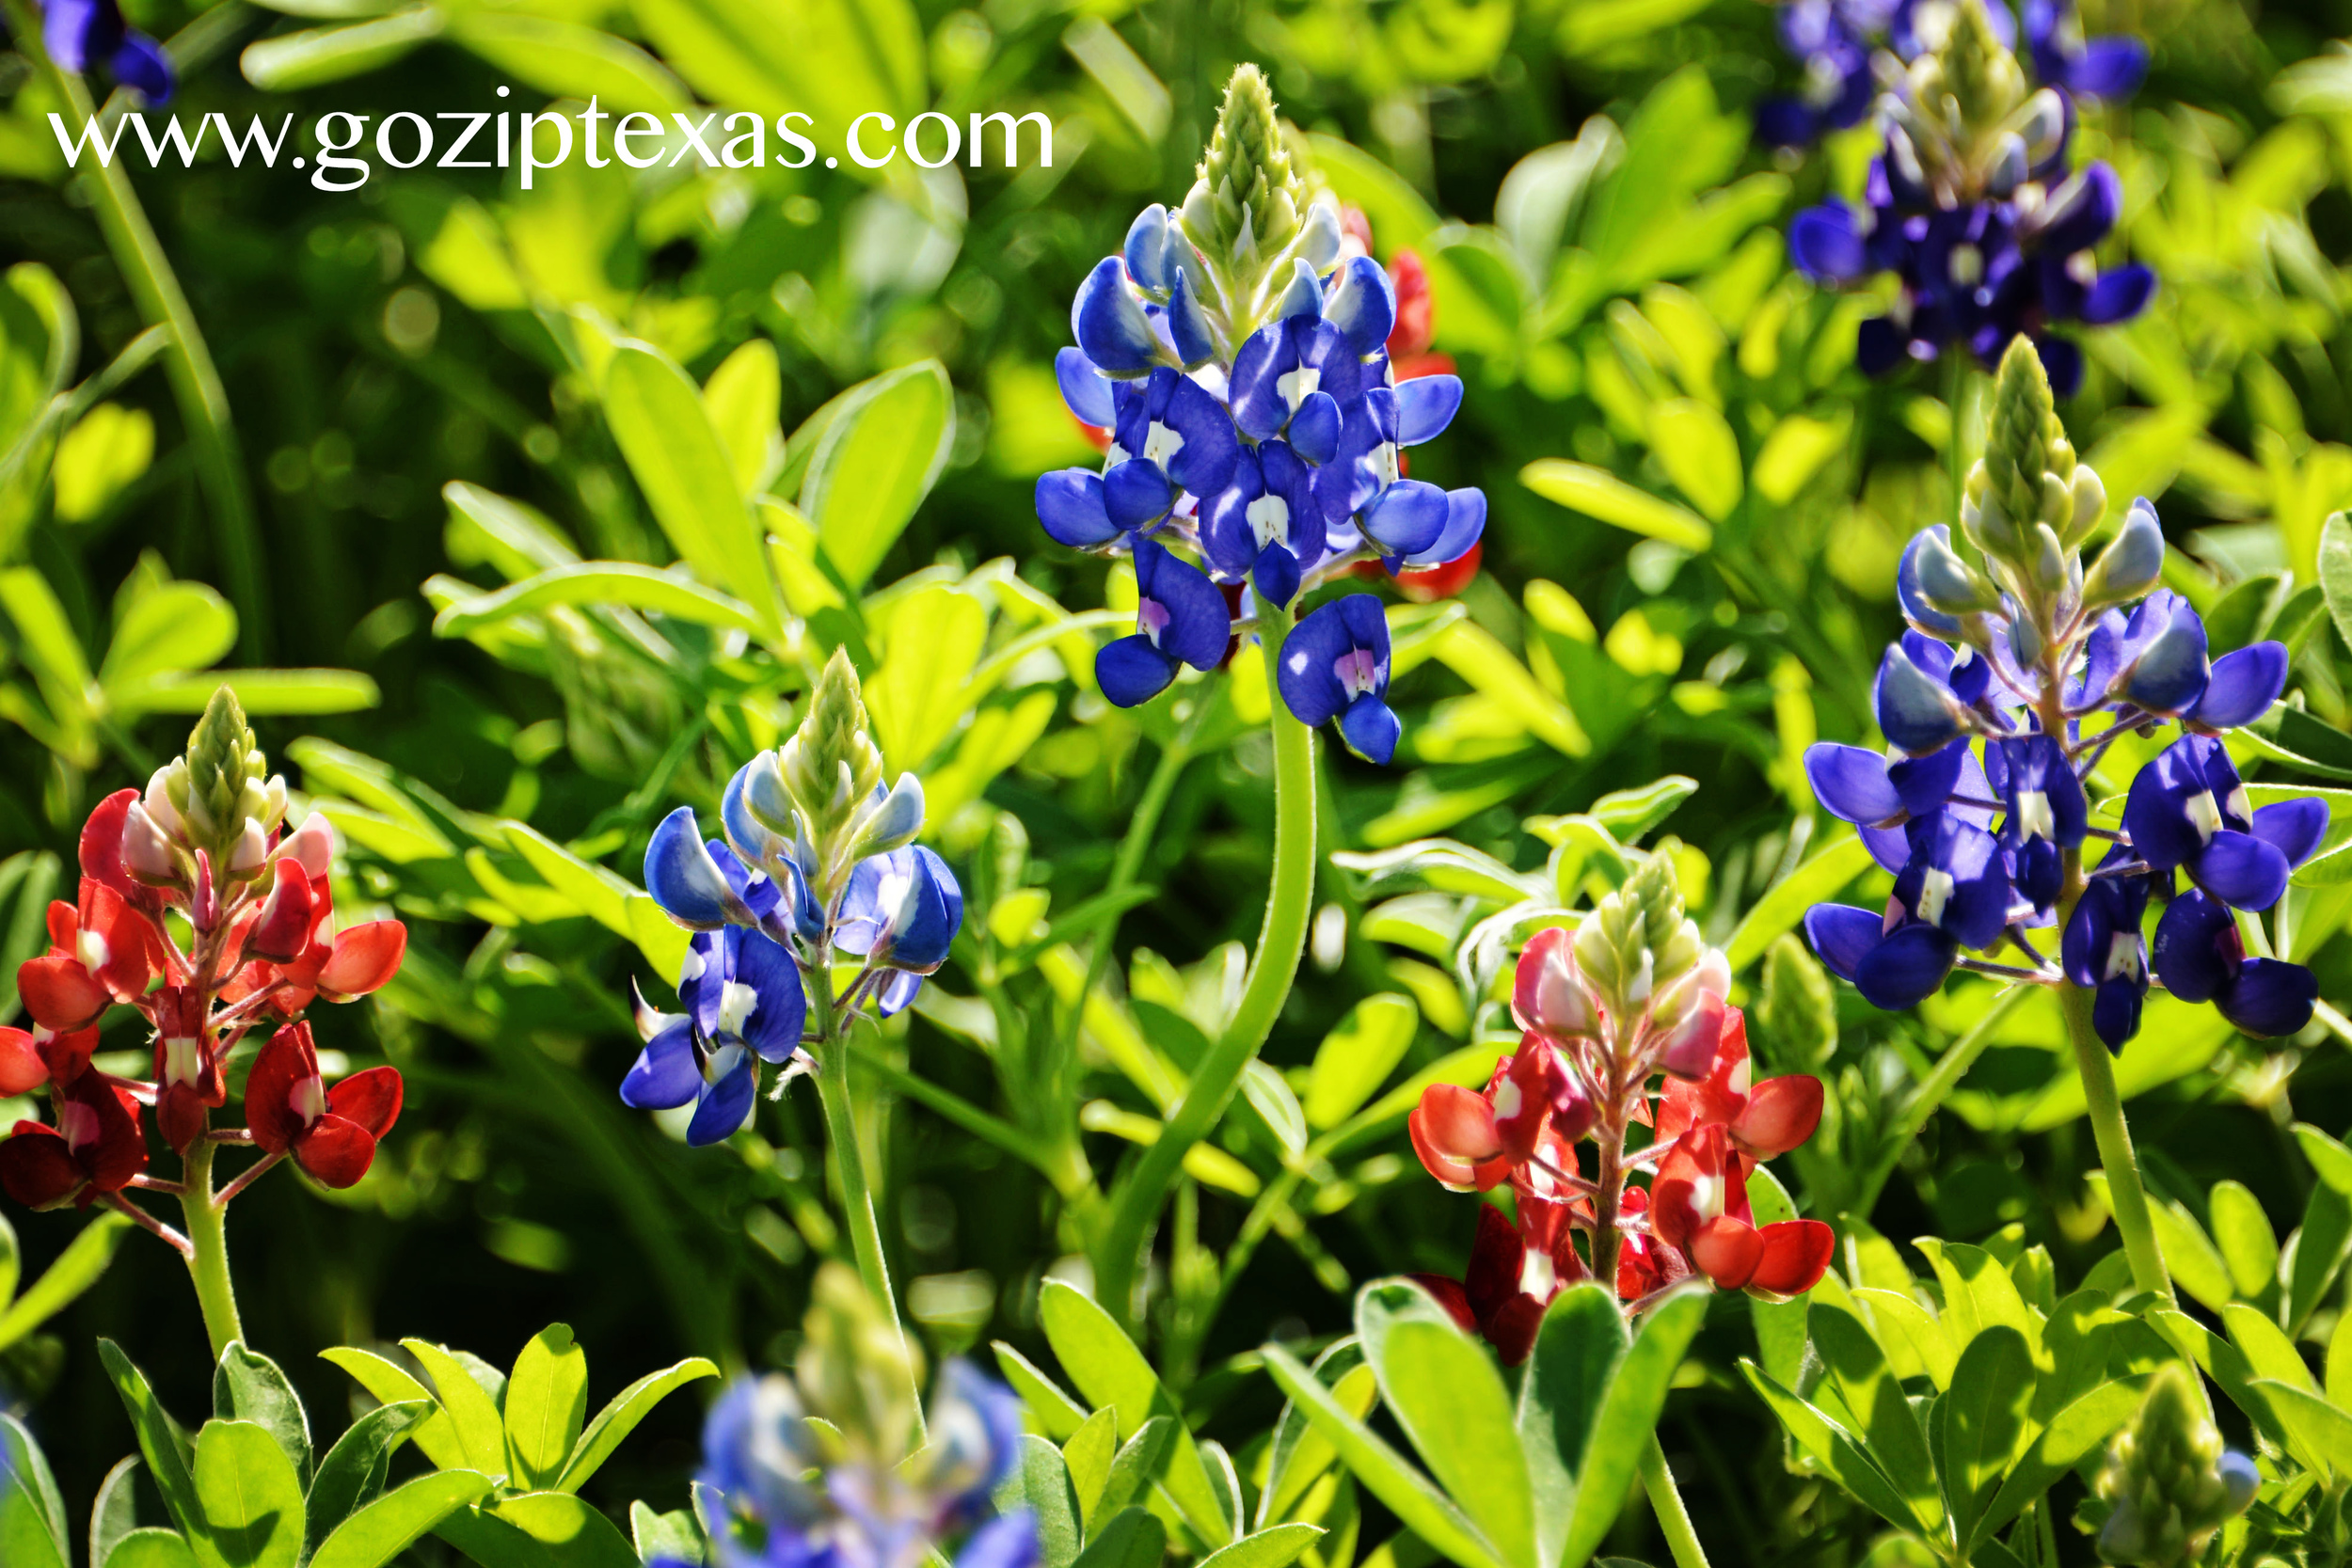 hot pink/red bluebonnets at New York Texas Zipline Adventures